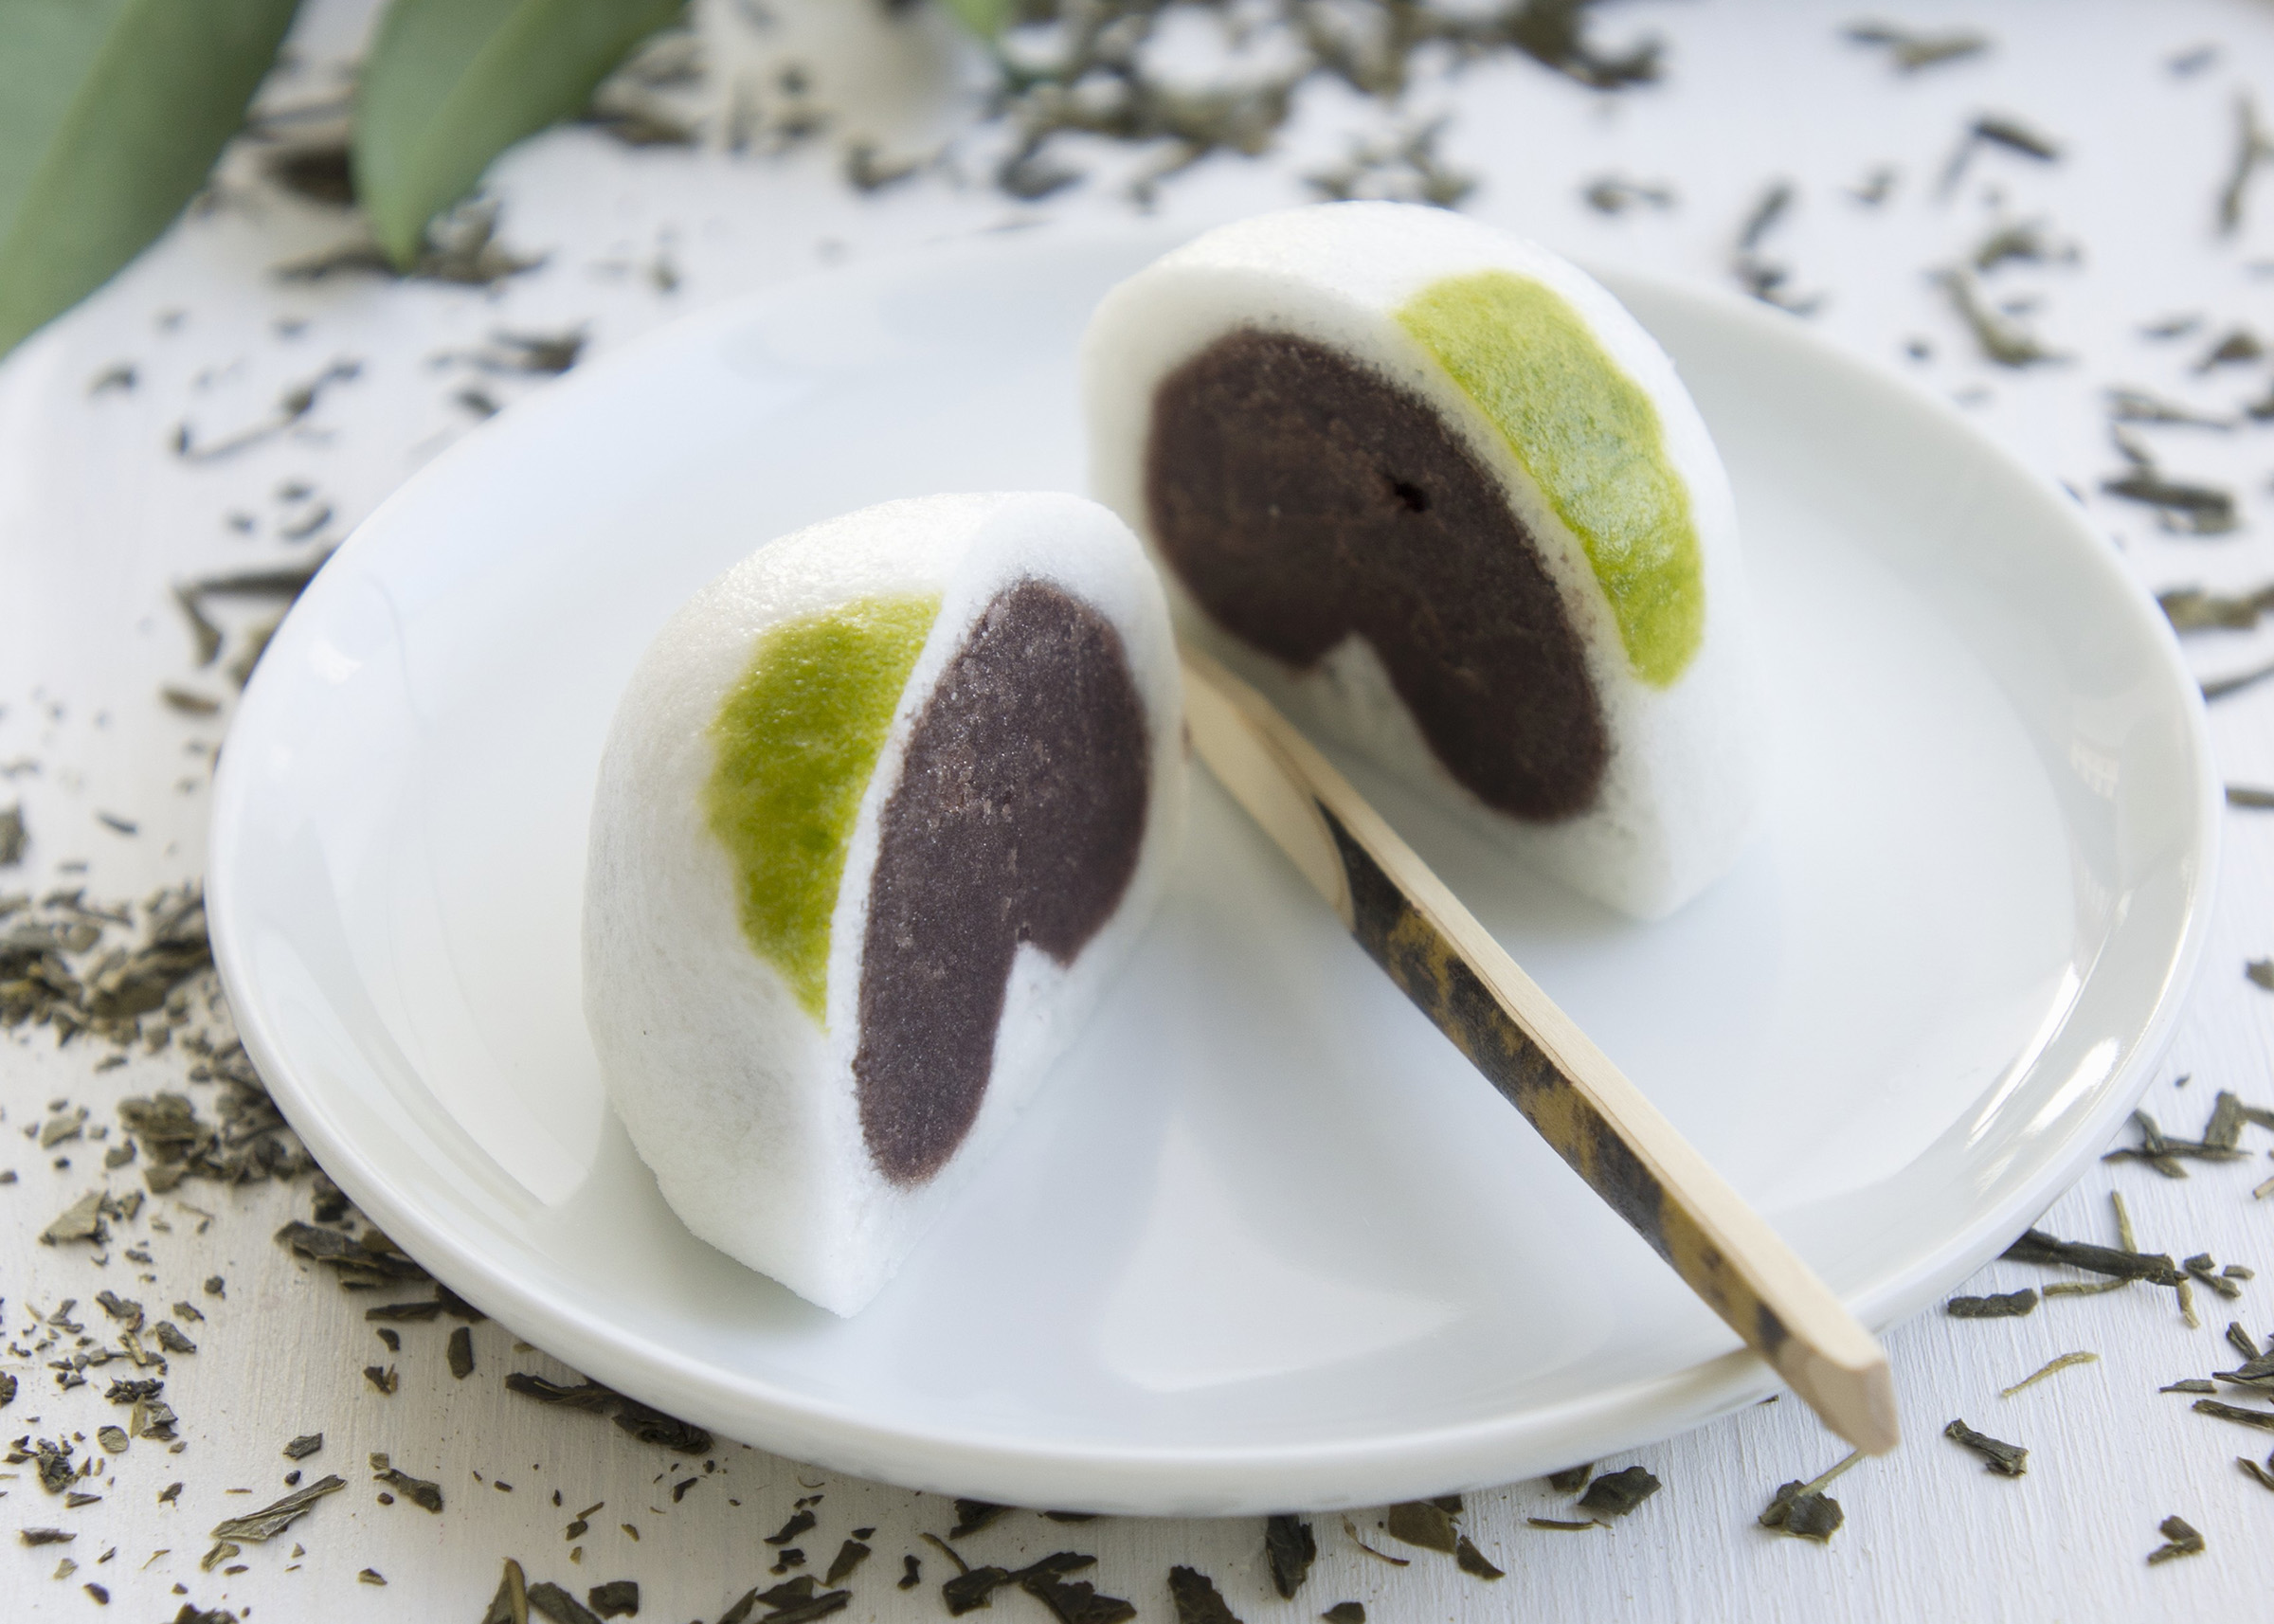 Daifuku mochi Japanese sweets made from mochi and anko on a plate